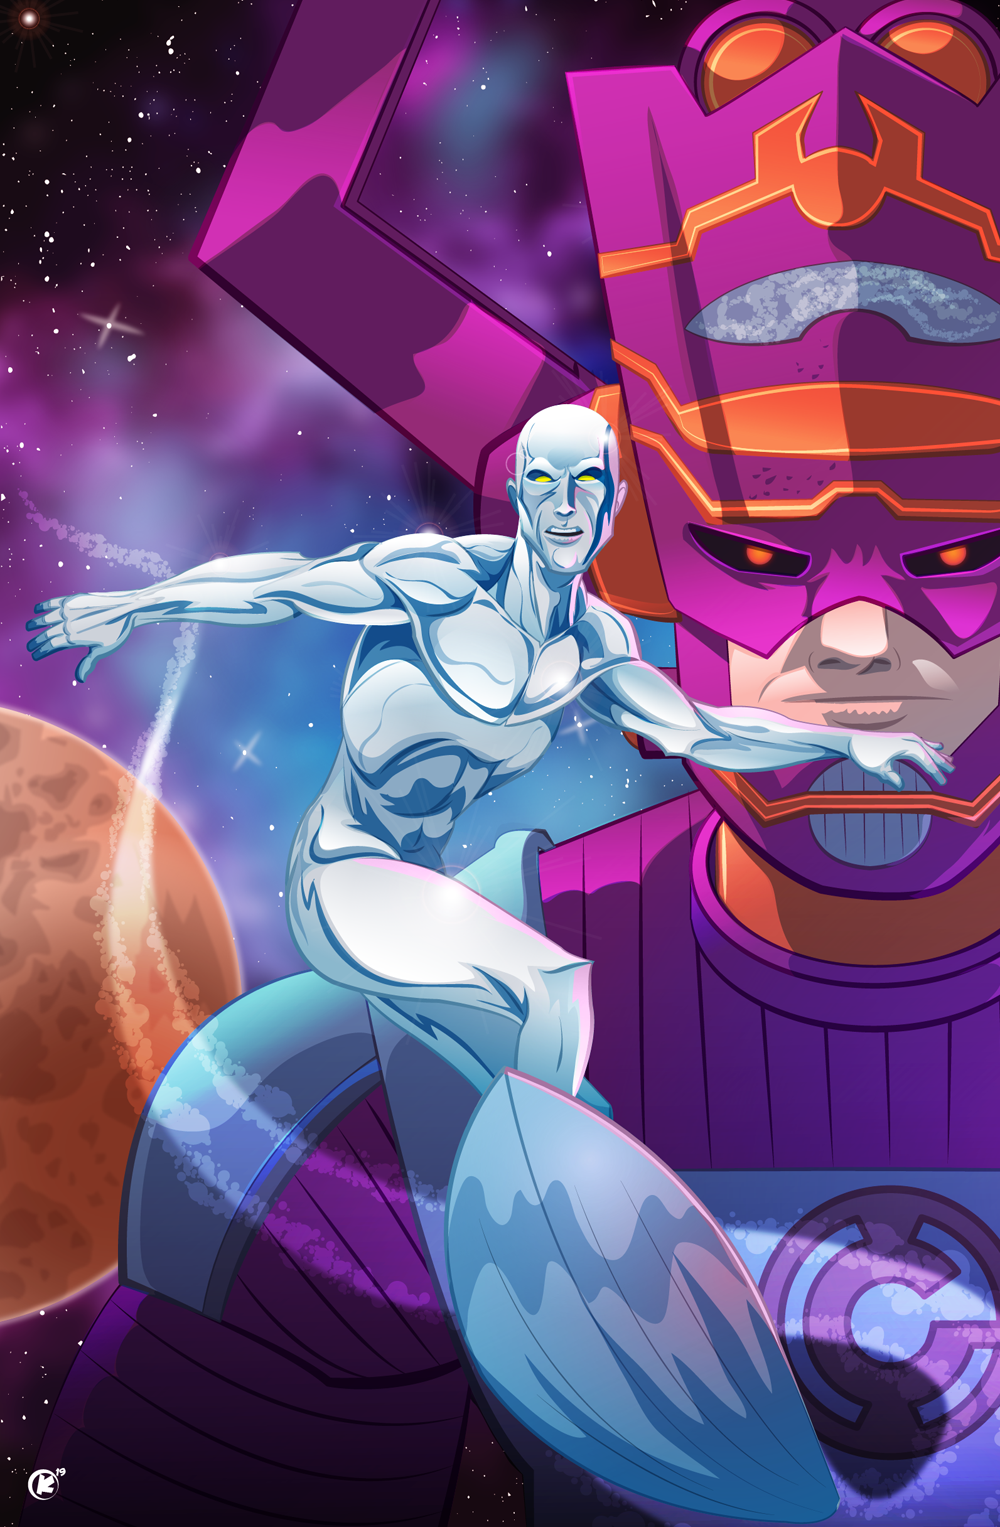 Silver Surfer the heard of Galactus